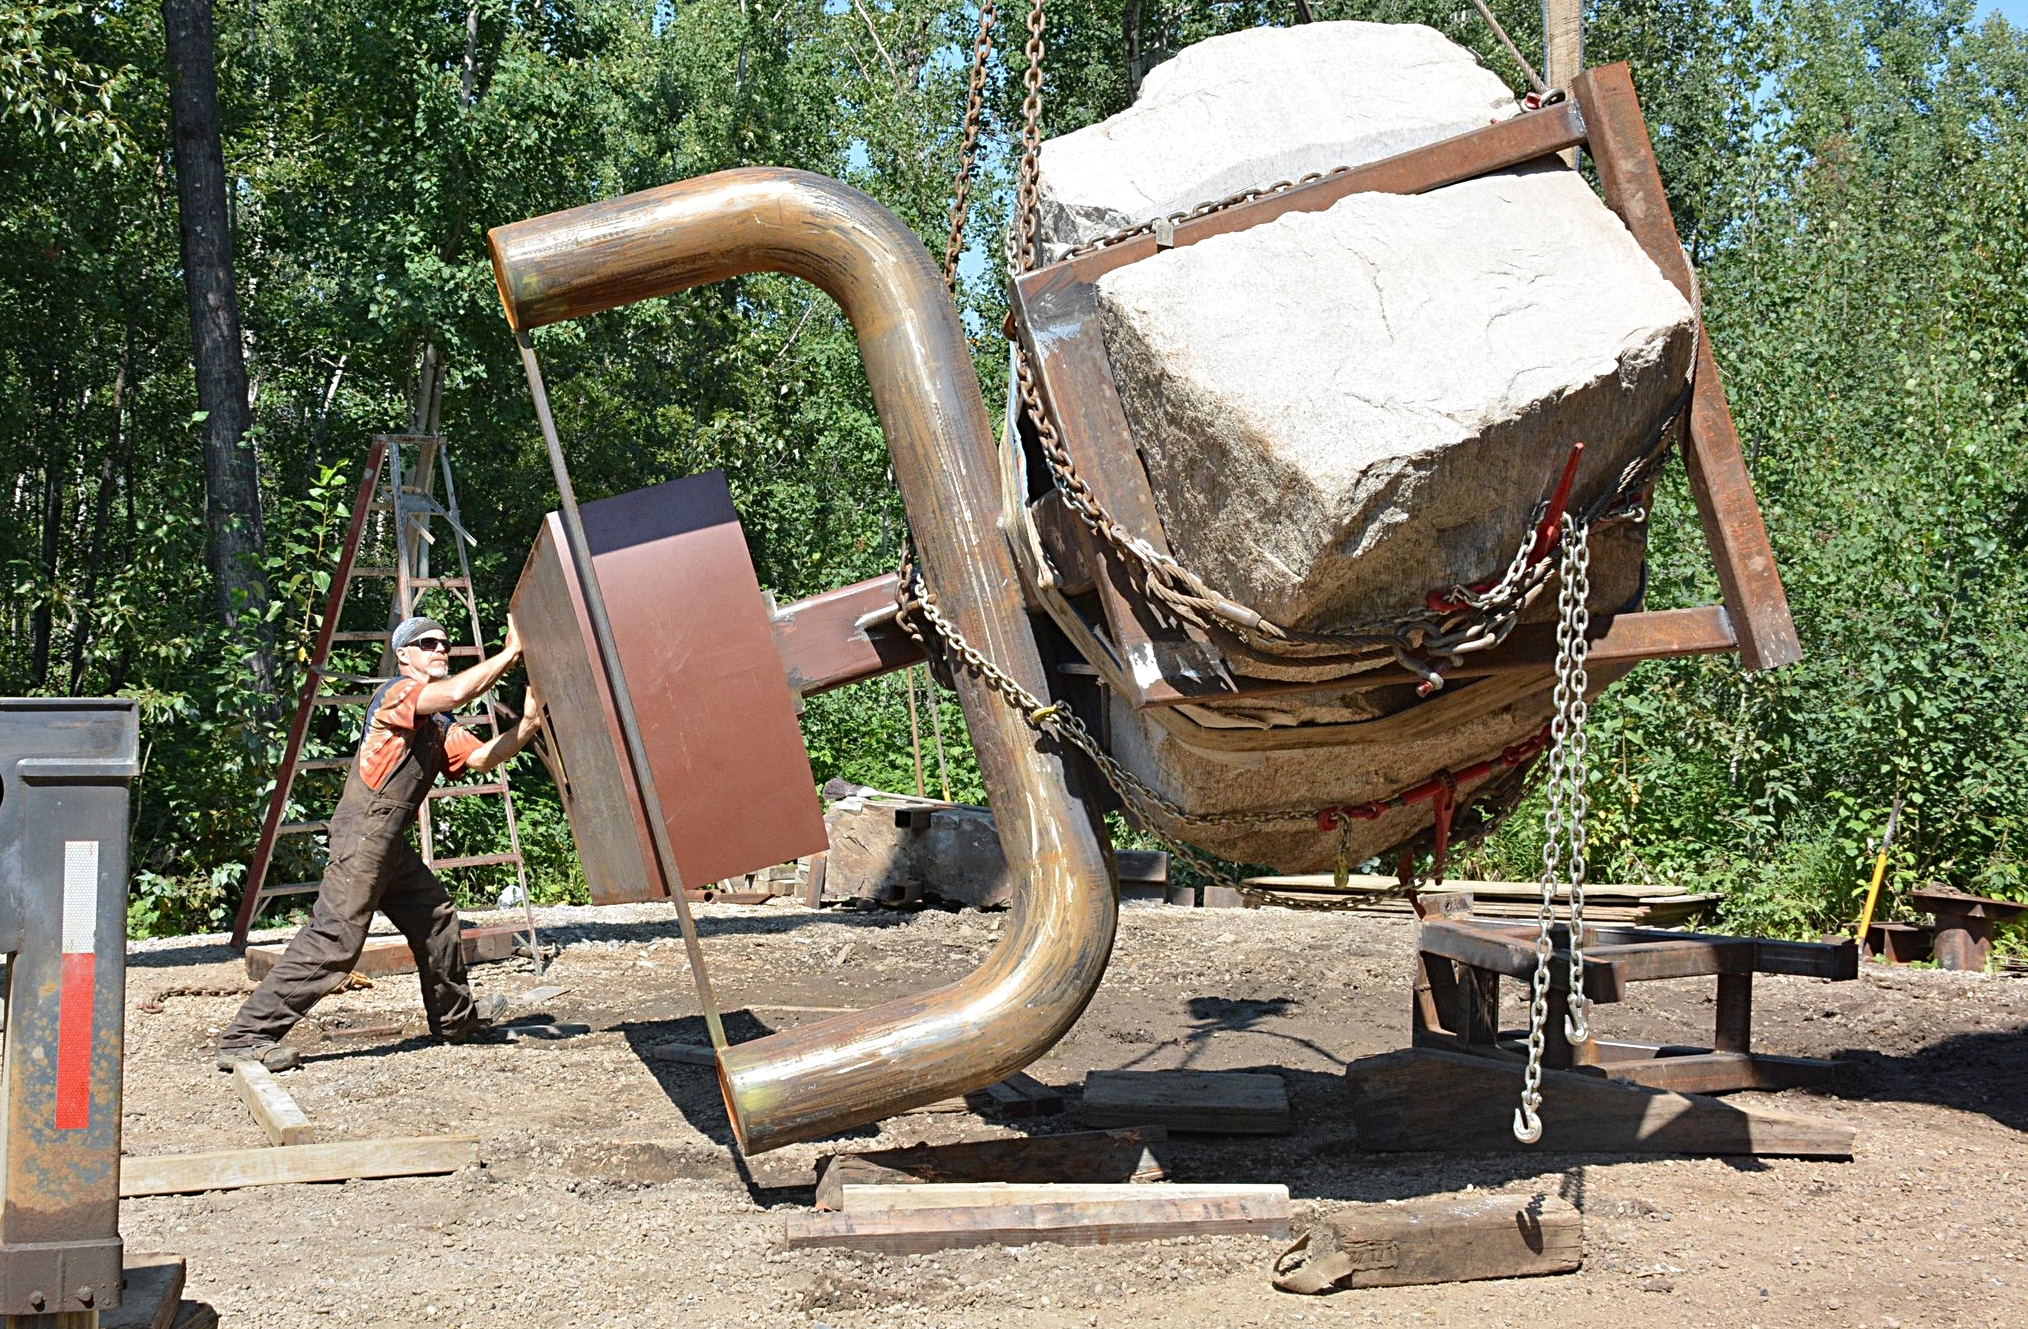 """Royden Mills: Typically Over Achieving: """"Potential"""" one of Three Sculpture sites spread over 1/4 Mile in Terwillegar Park, Edmonton Alberta Canada Sept 2017"""